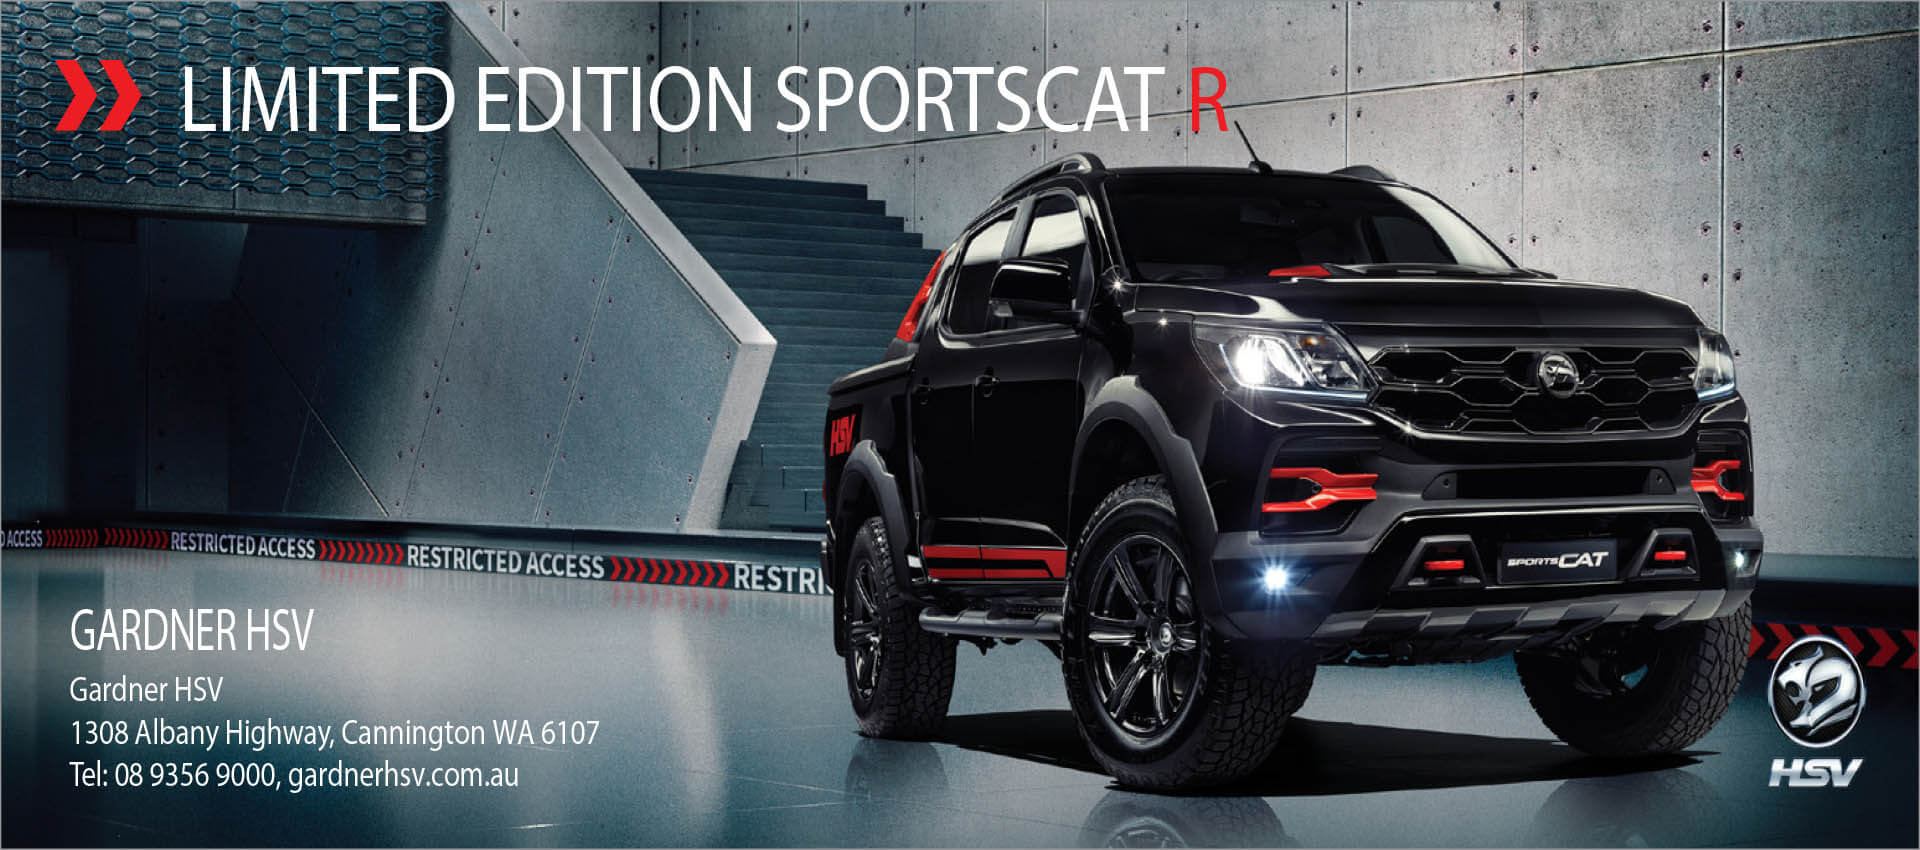 Limited Edition Sportscat R